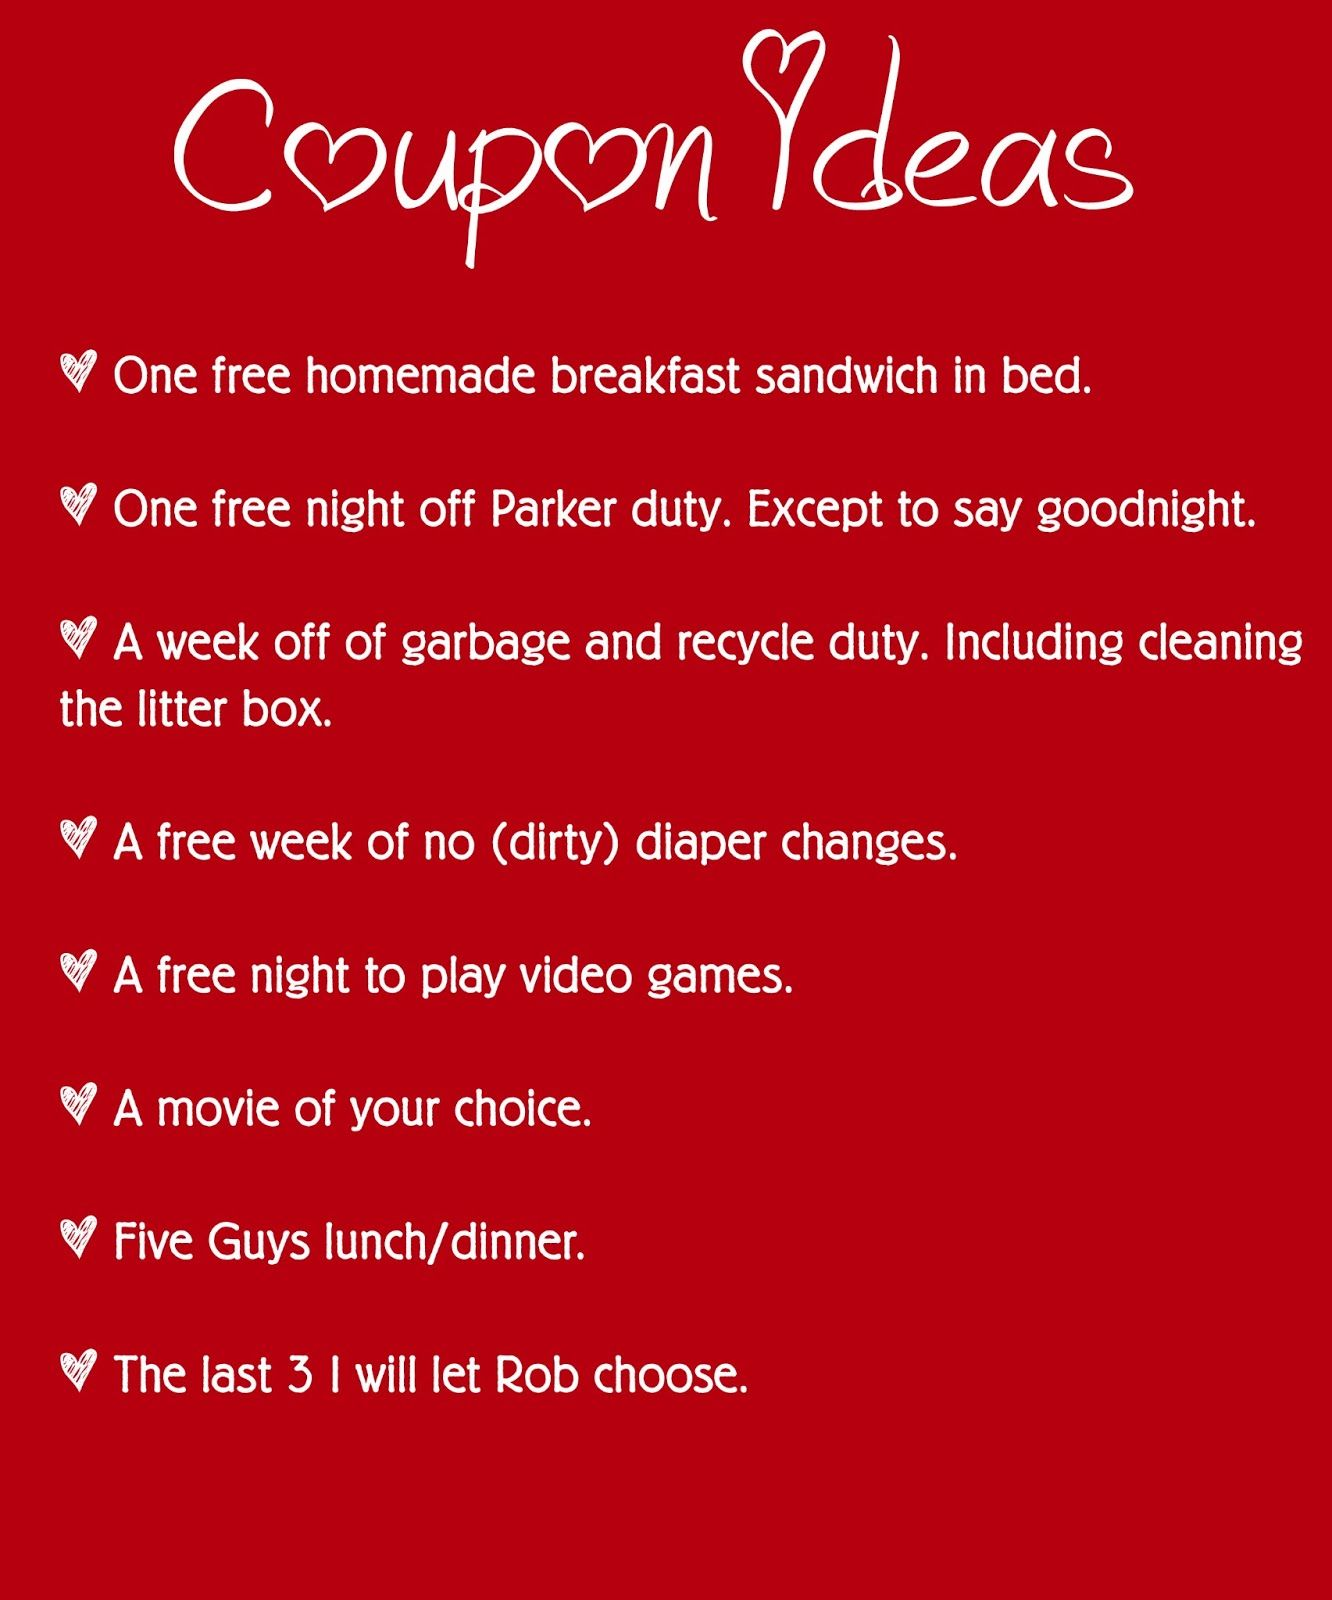 ValentineS Day Coupon Book Idea  Valentines Day